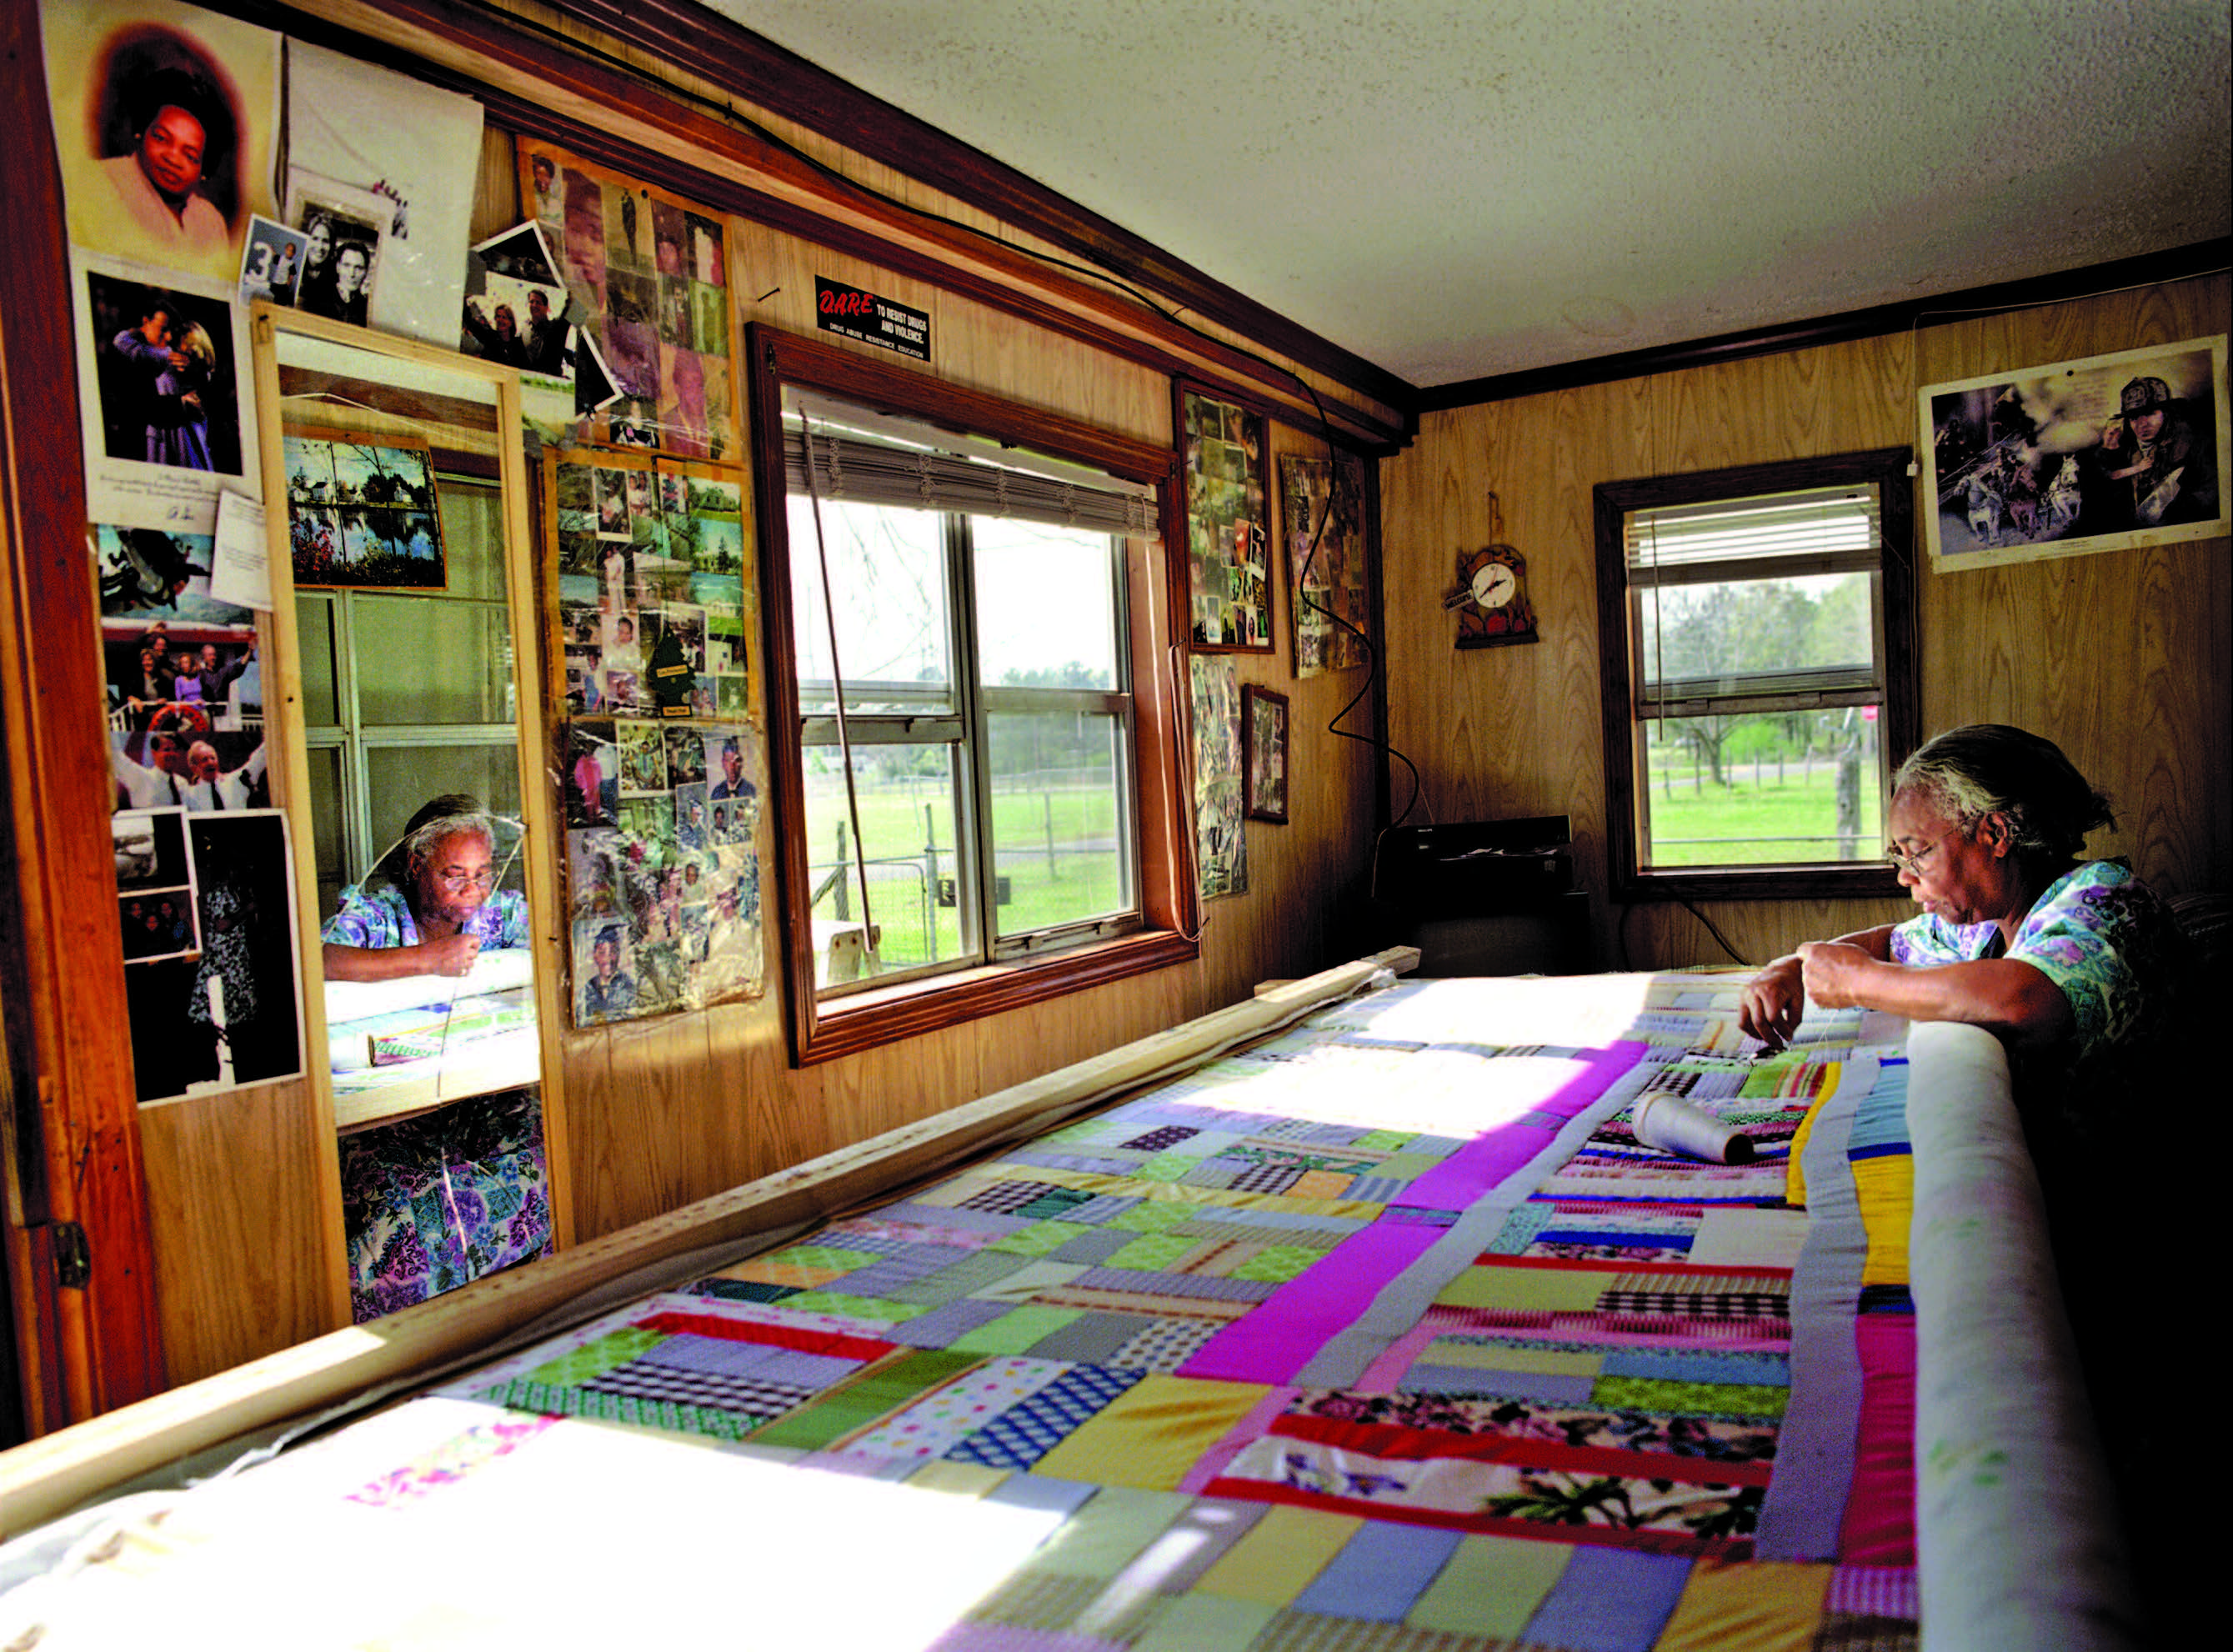 Mary Lee Bendolph, born 1935, quilting in her home, 2003. Photograph by Linda Day Clark.